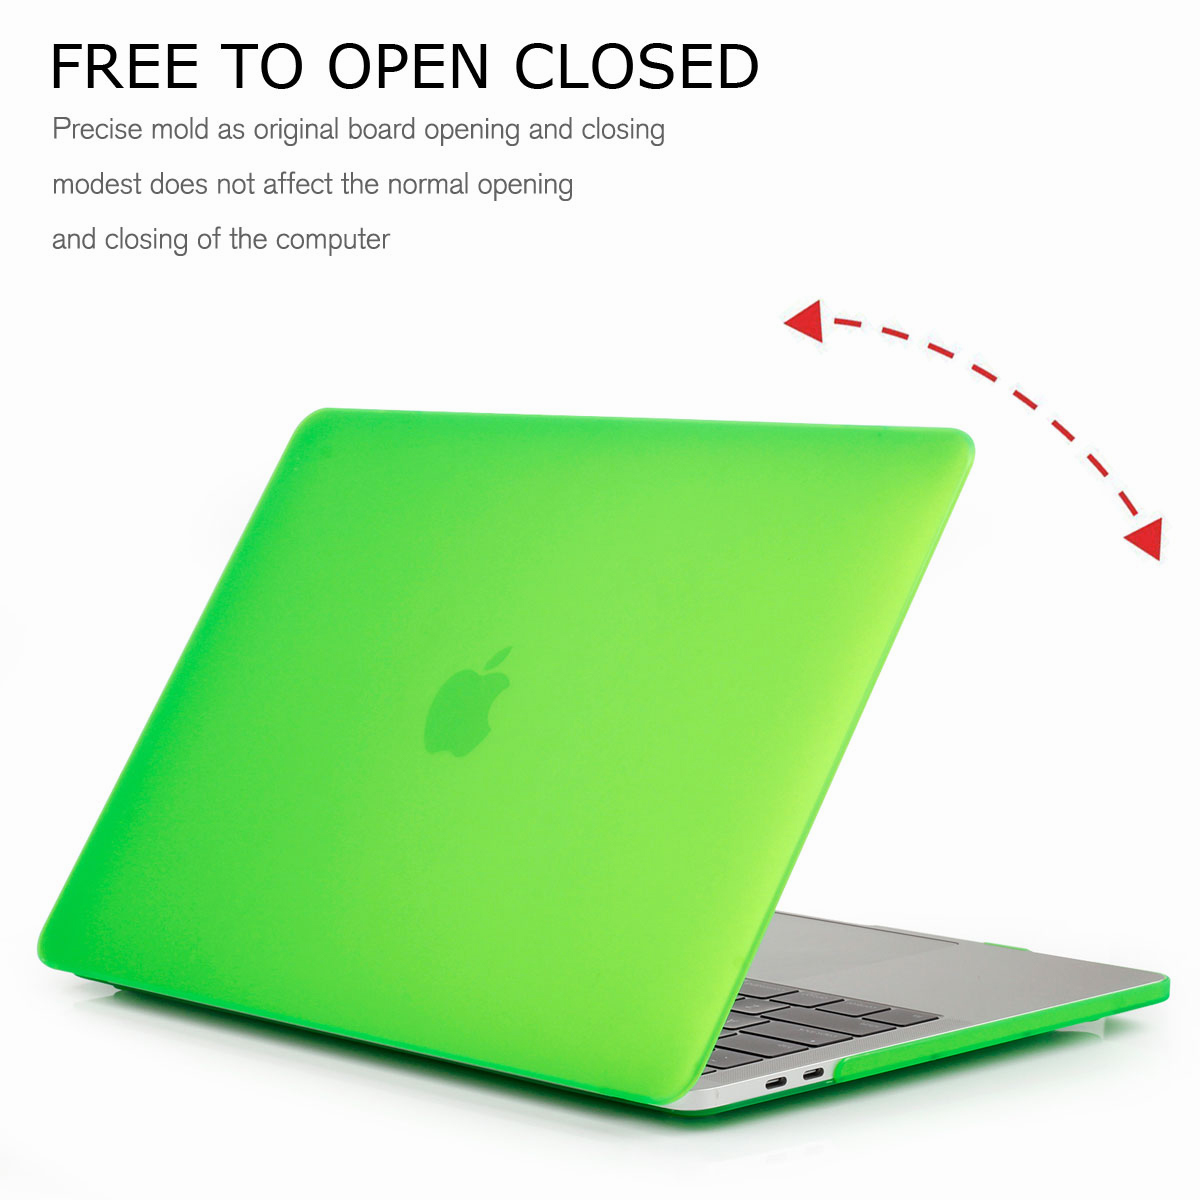 Shockproof-Rubberized-Matte-Hard-Case-Cover-For-Macbook-13-034-15-034-Inch-A1286-A1278 thumbnail 20